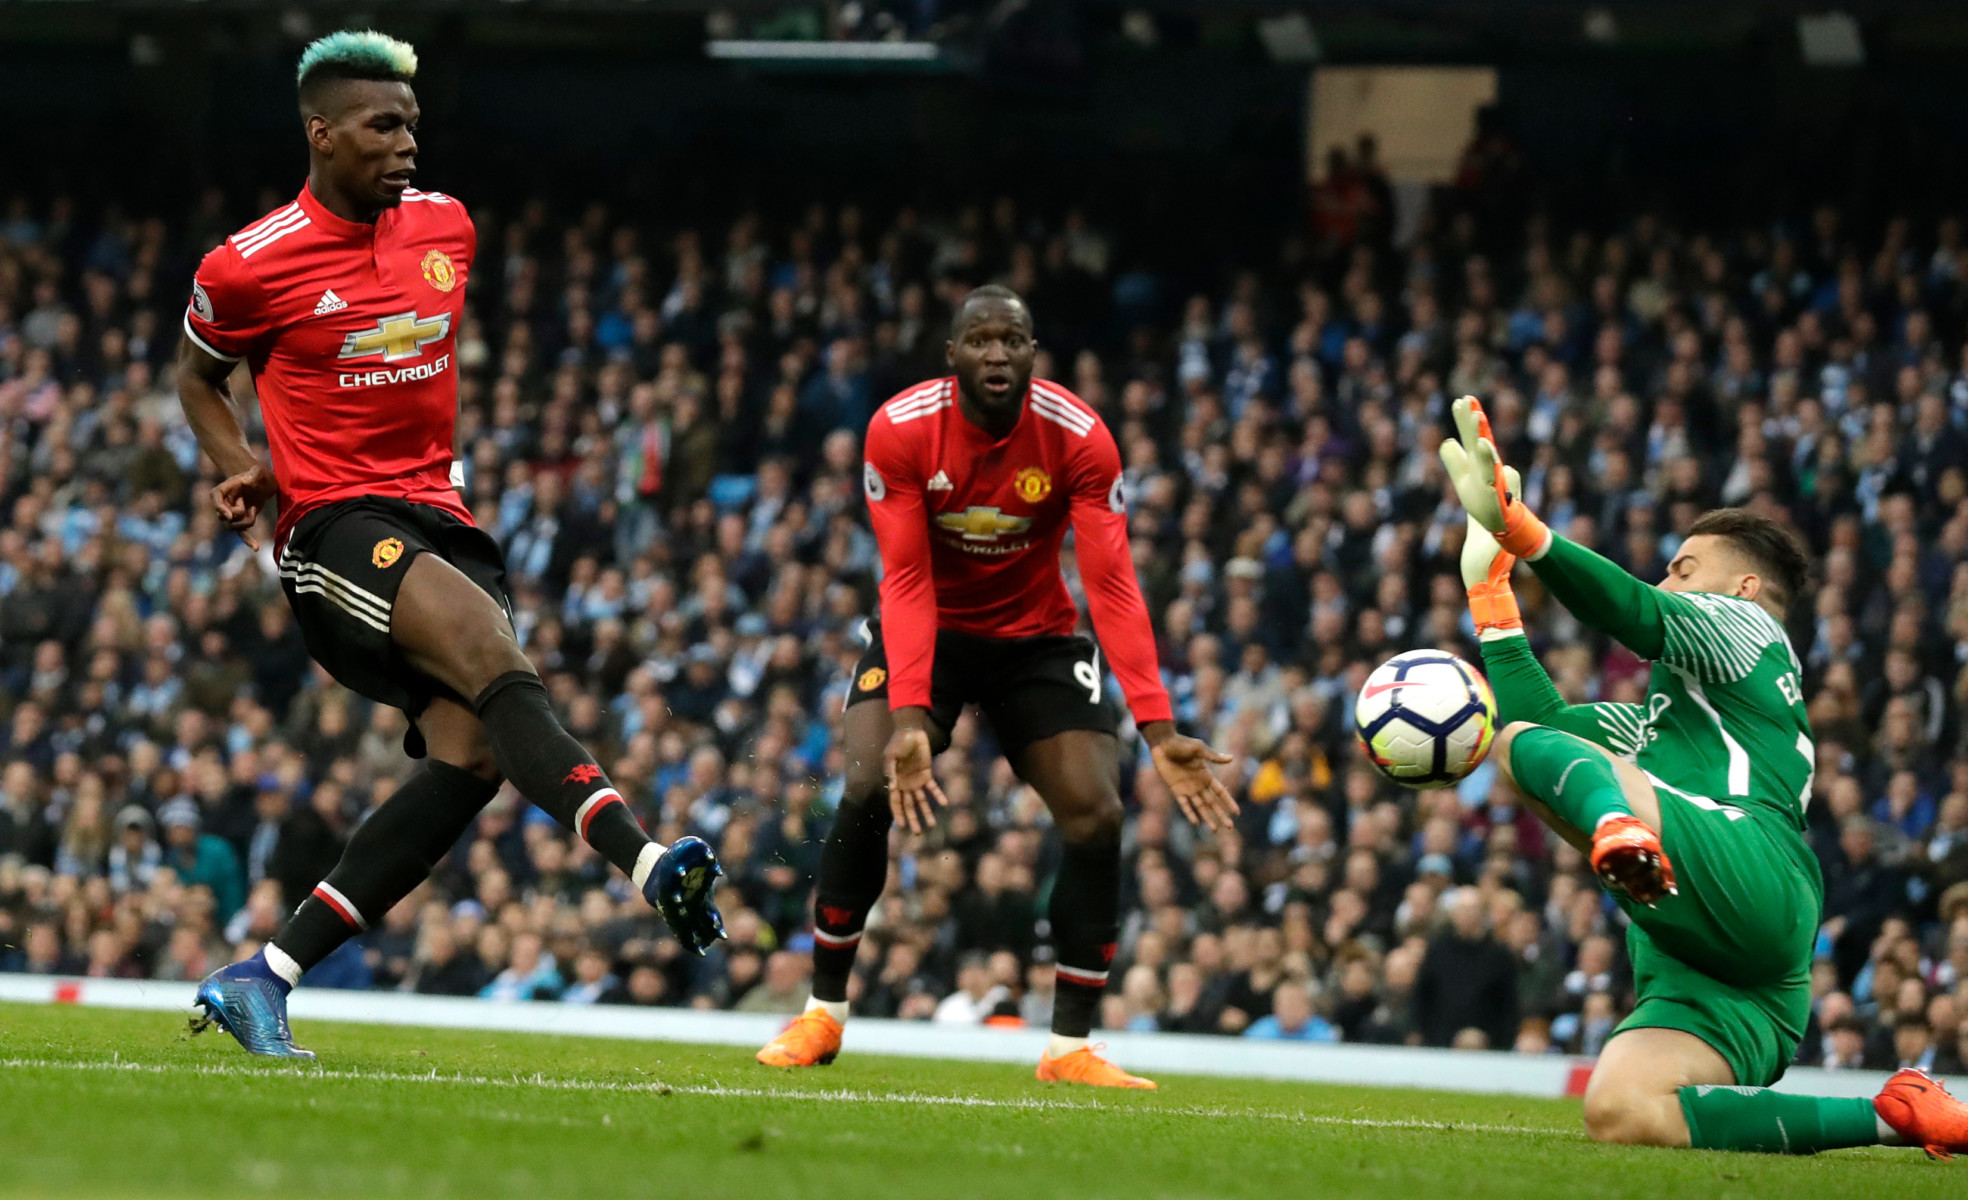 Arguably his best performance in a Red Devils shirt came in the 3-2 win over Manchester City in April 2018